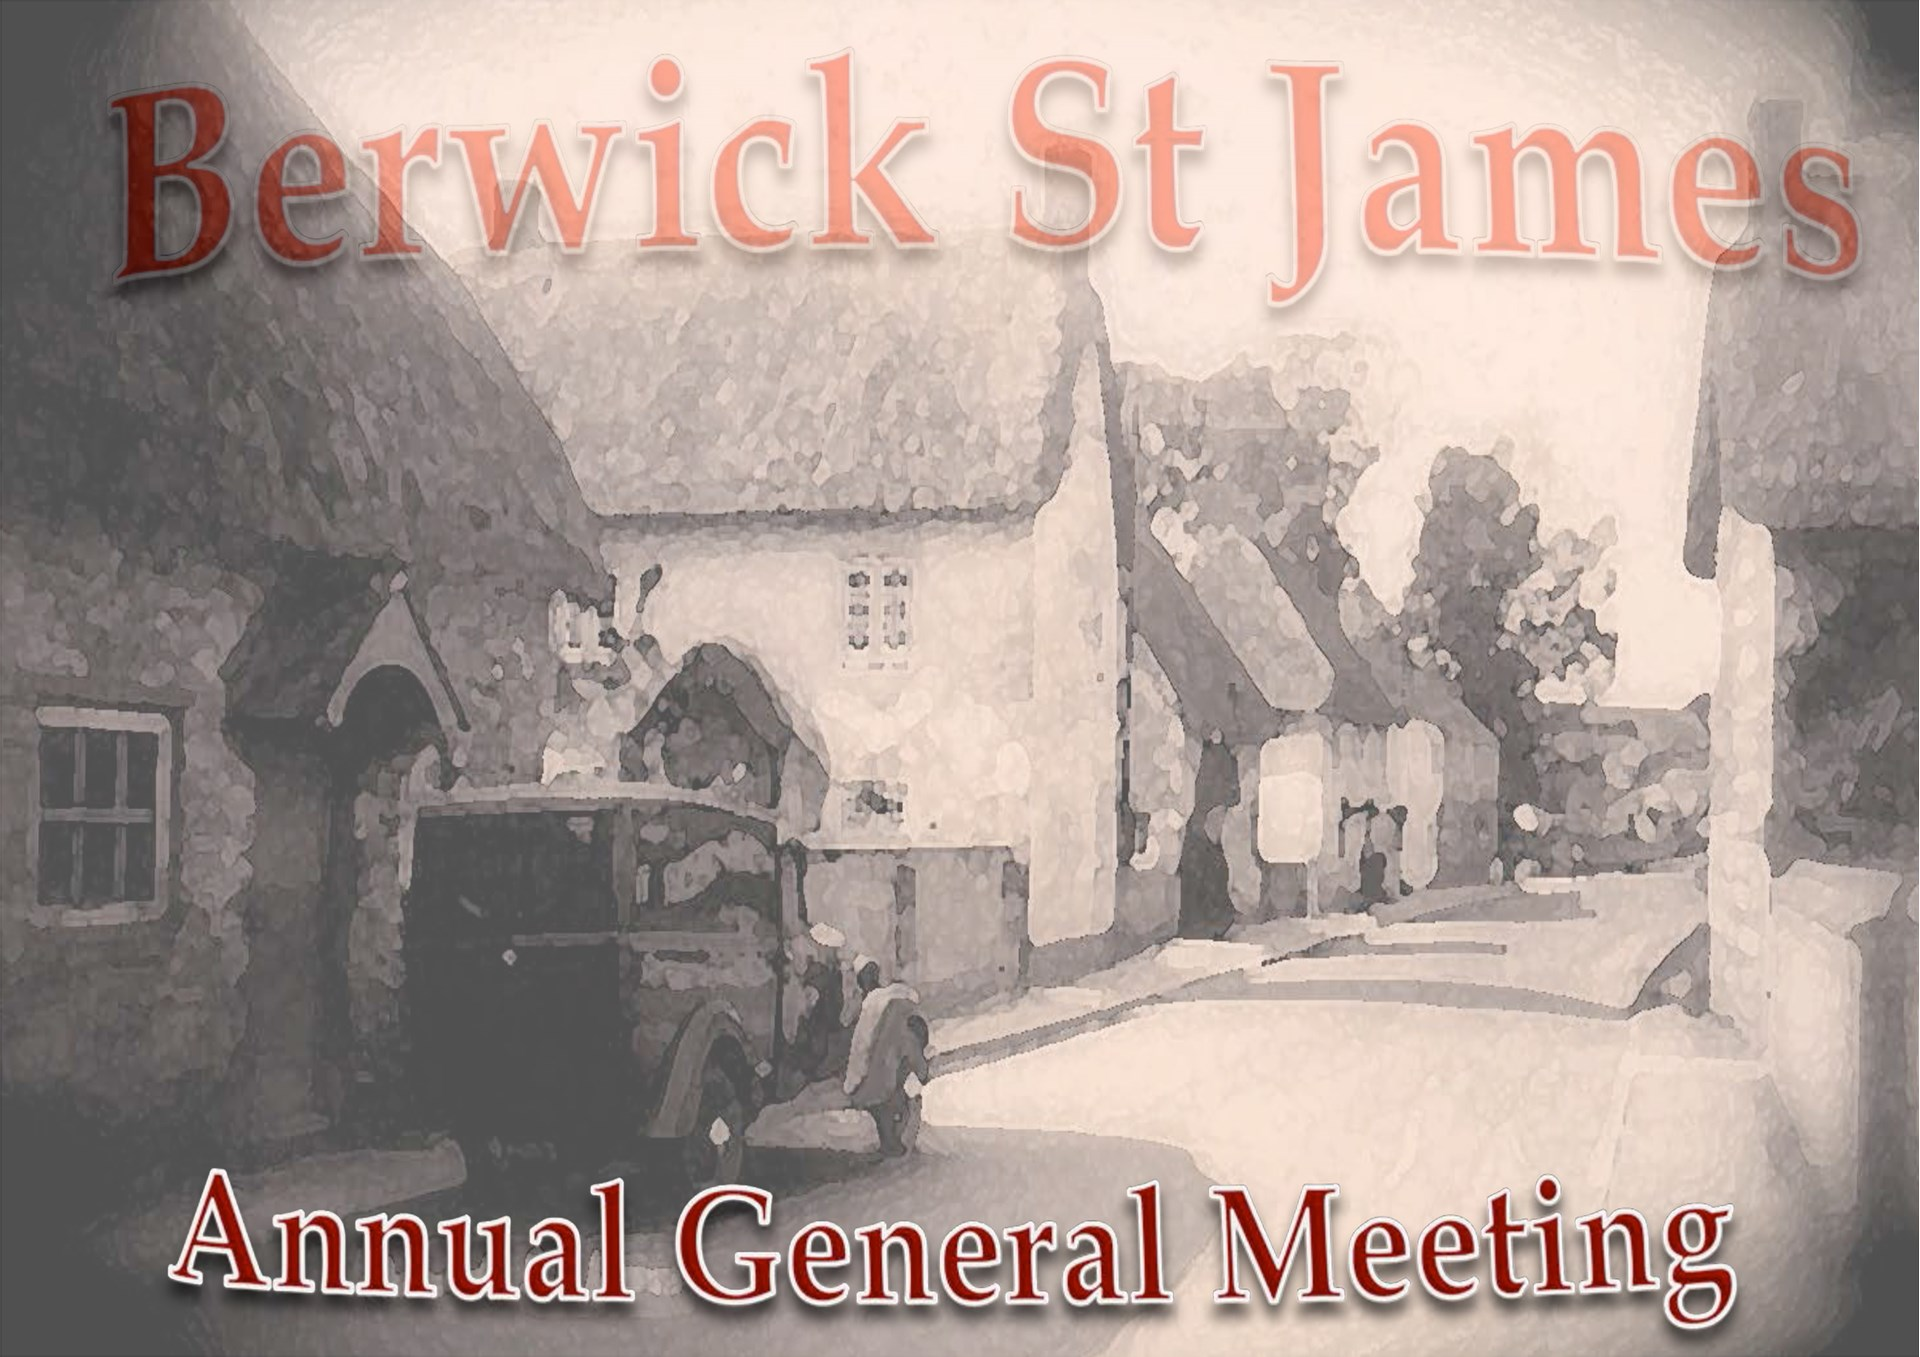 Berwick St James Parish Community Village AGM - 8 May '17